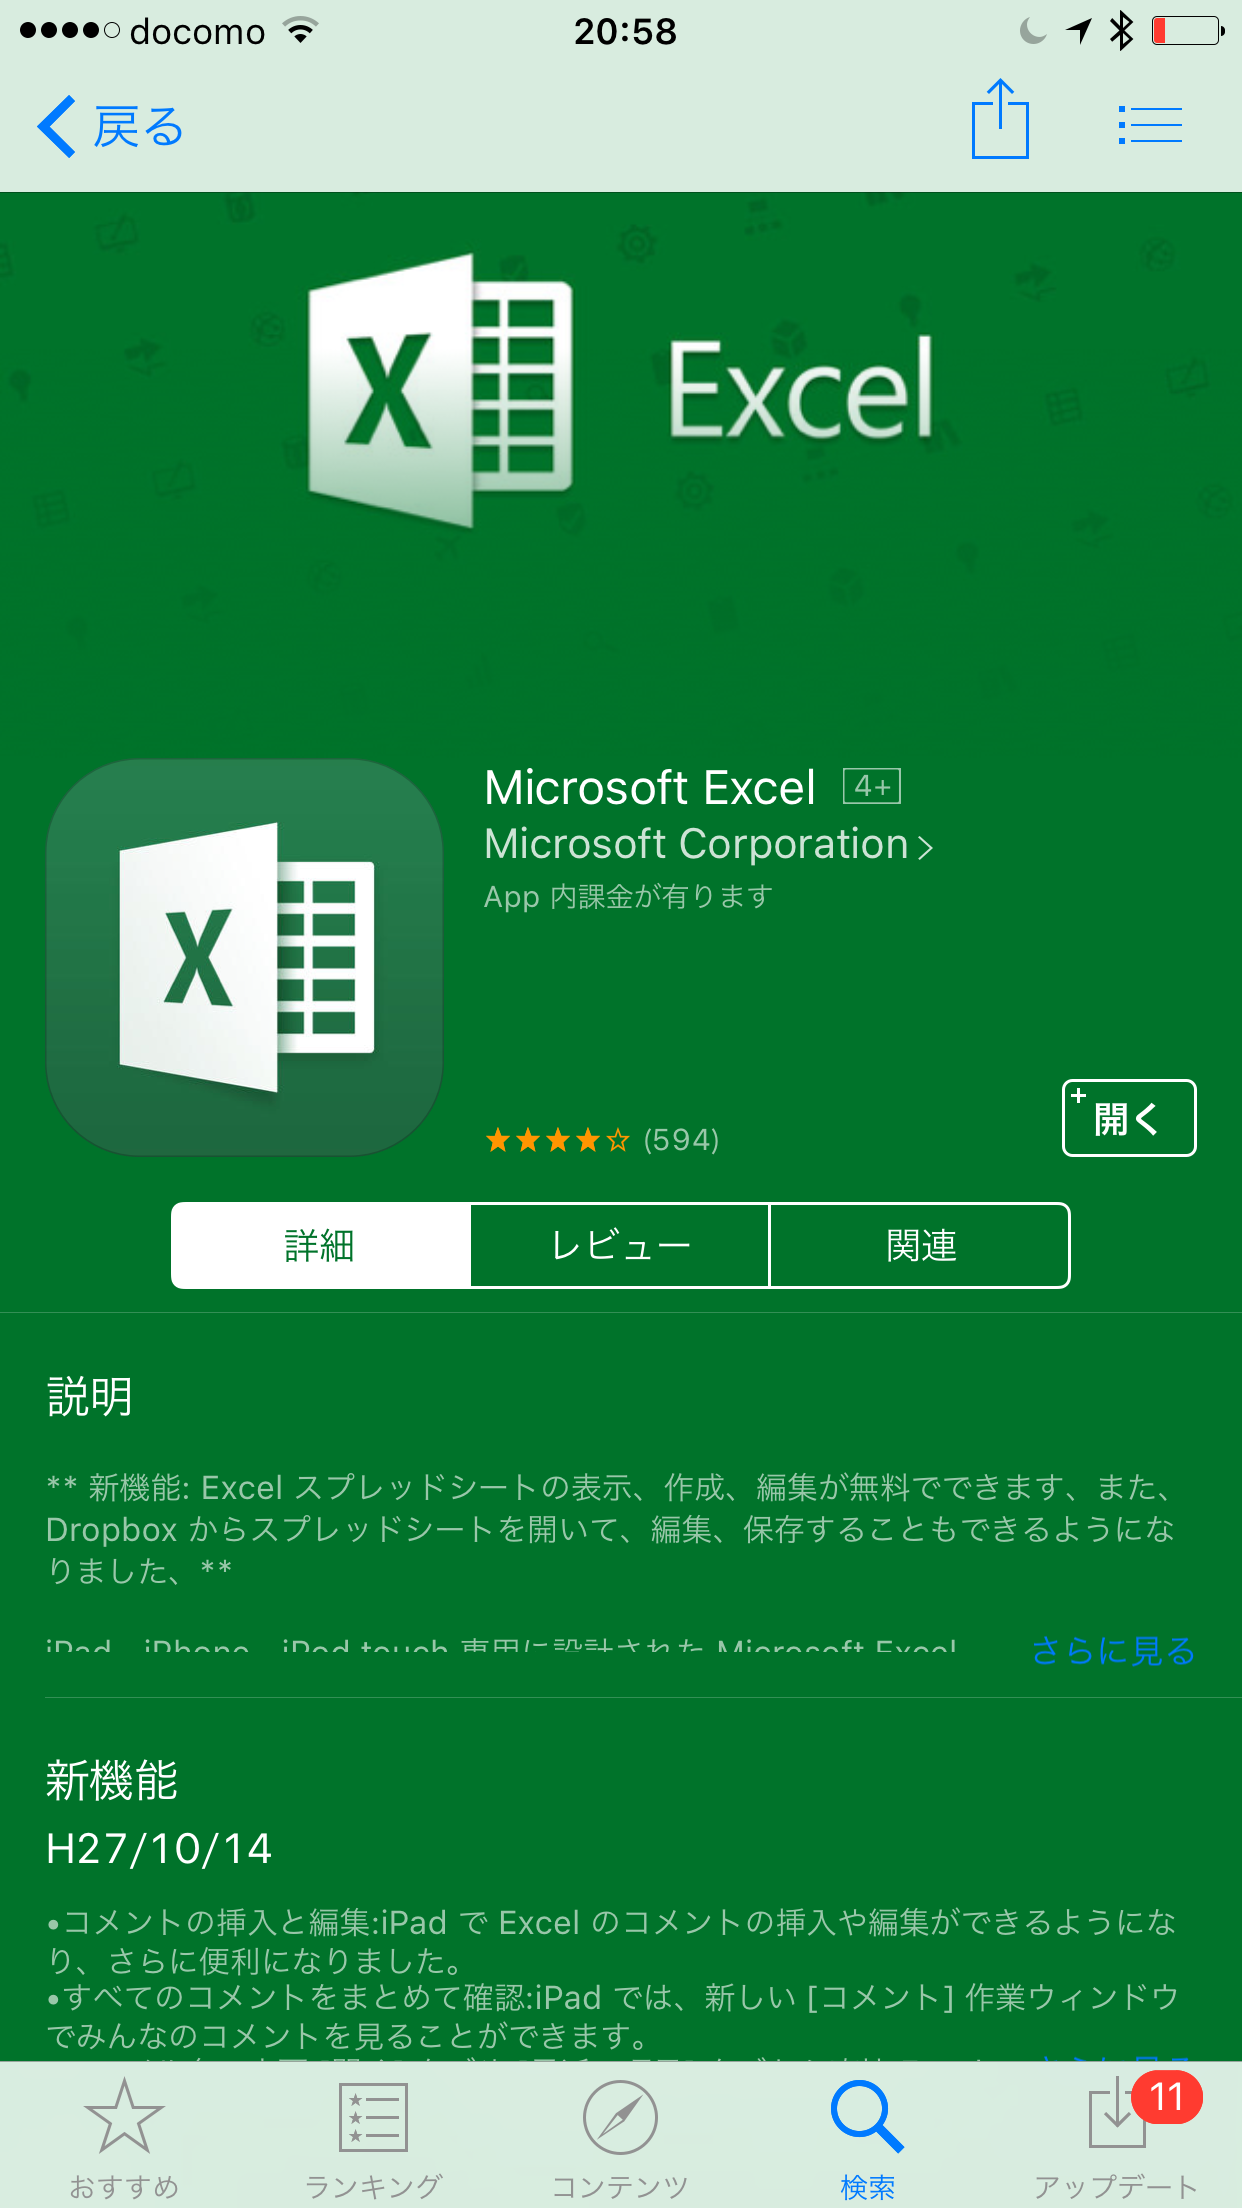 iPhone,iPadのExcelアプリ